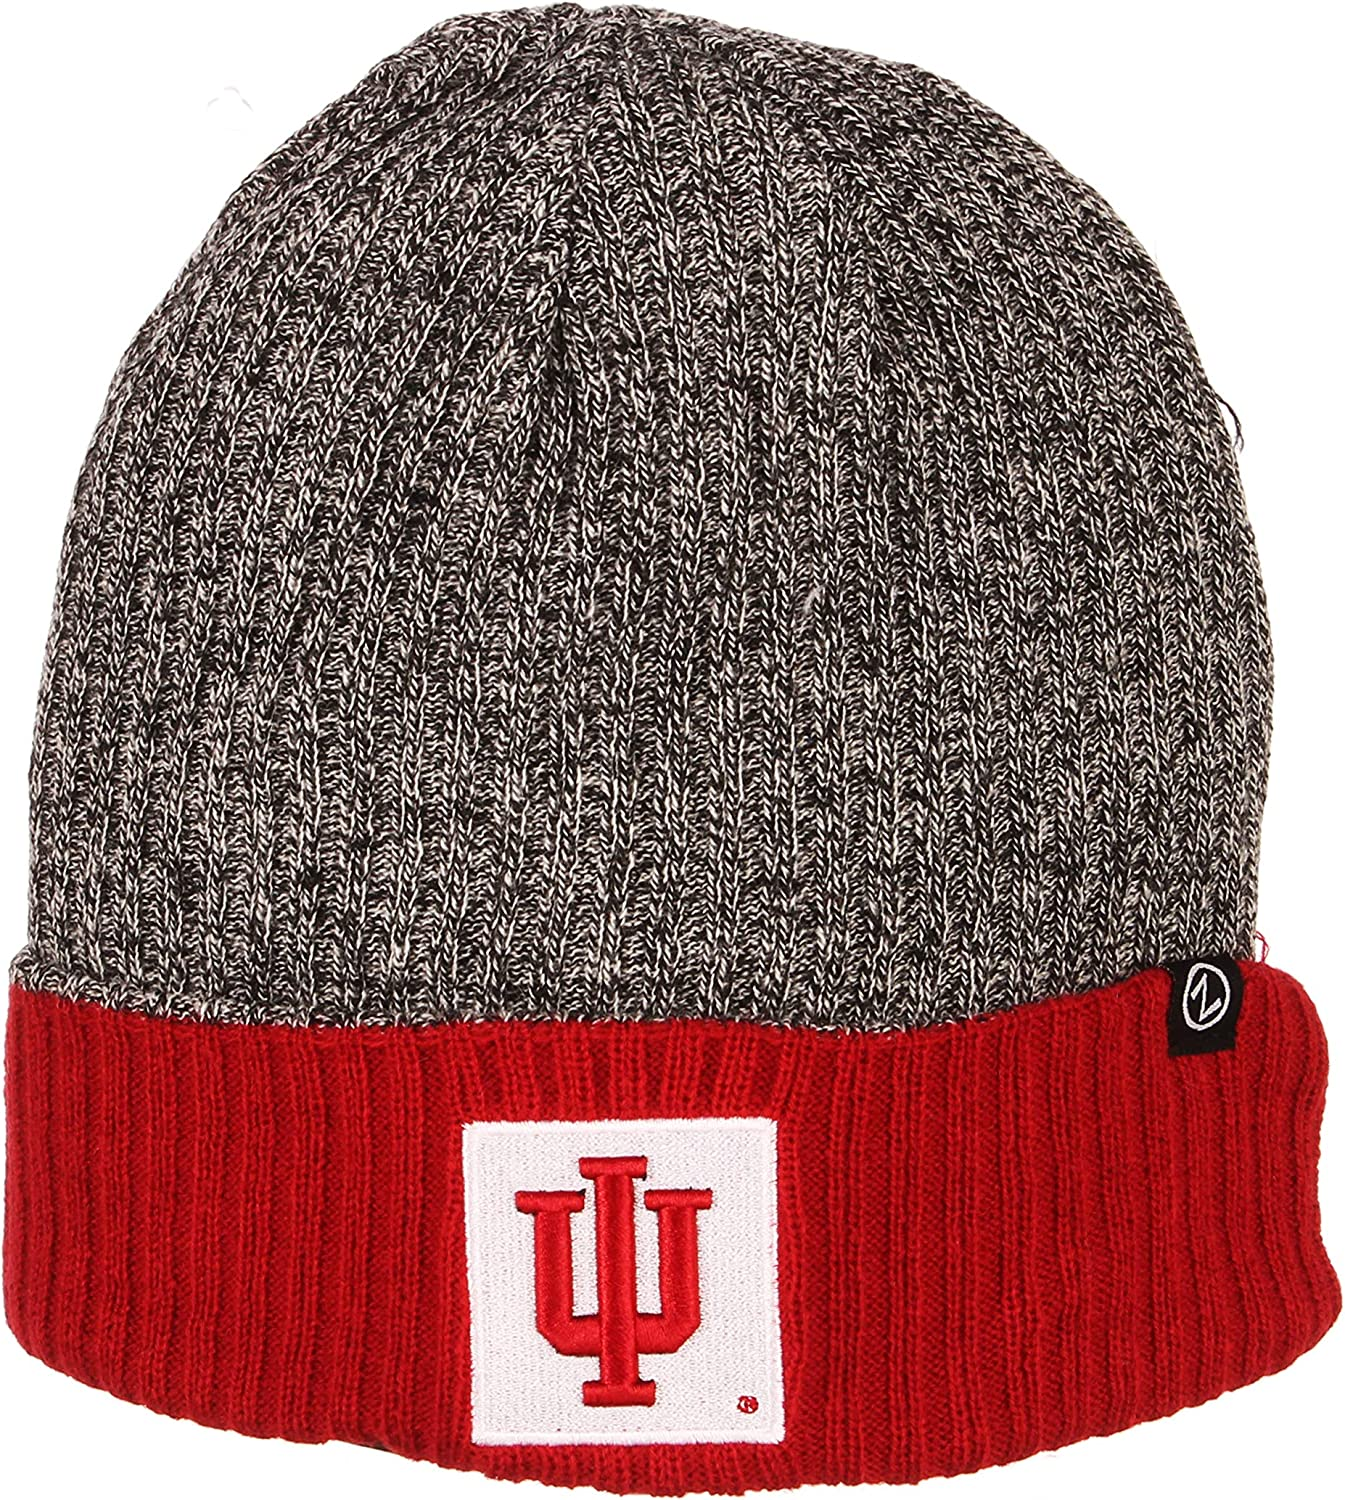 Zephyr Muse Muse Knit Beanie